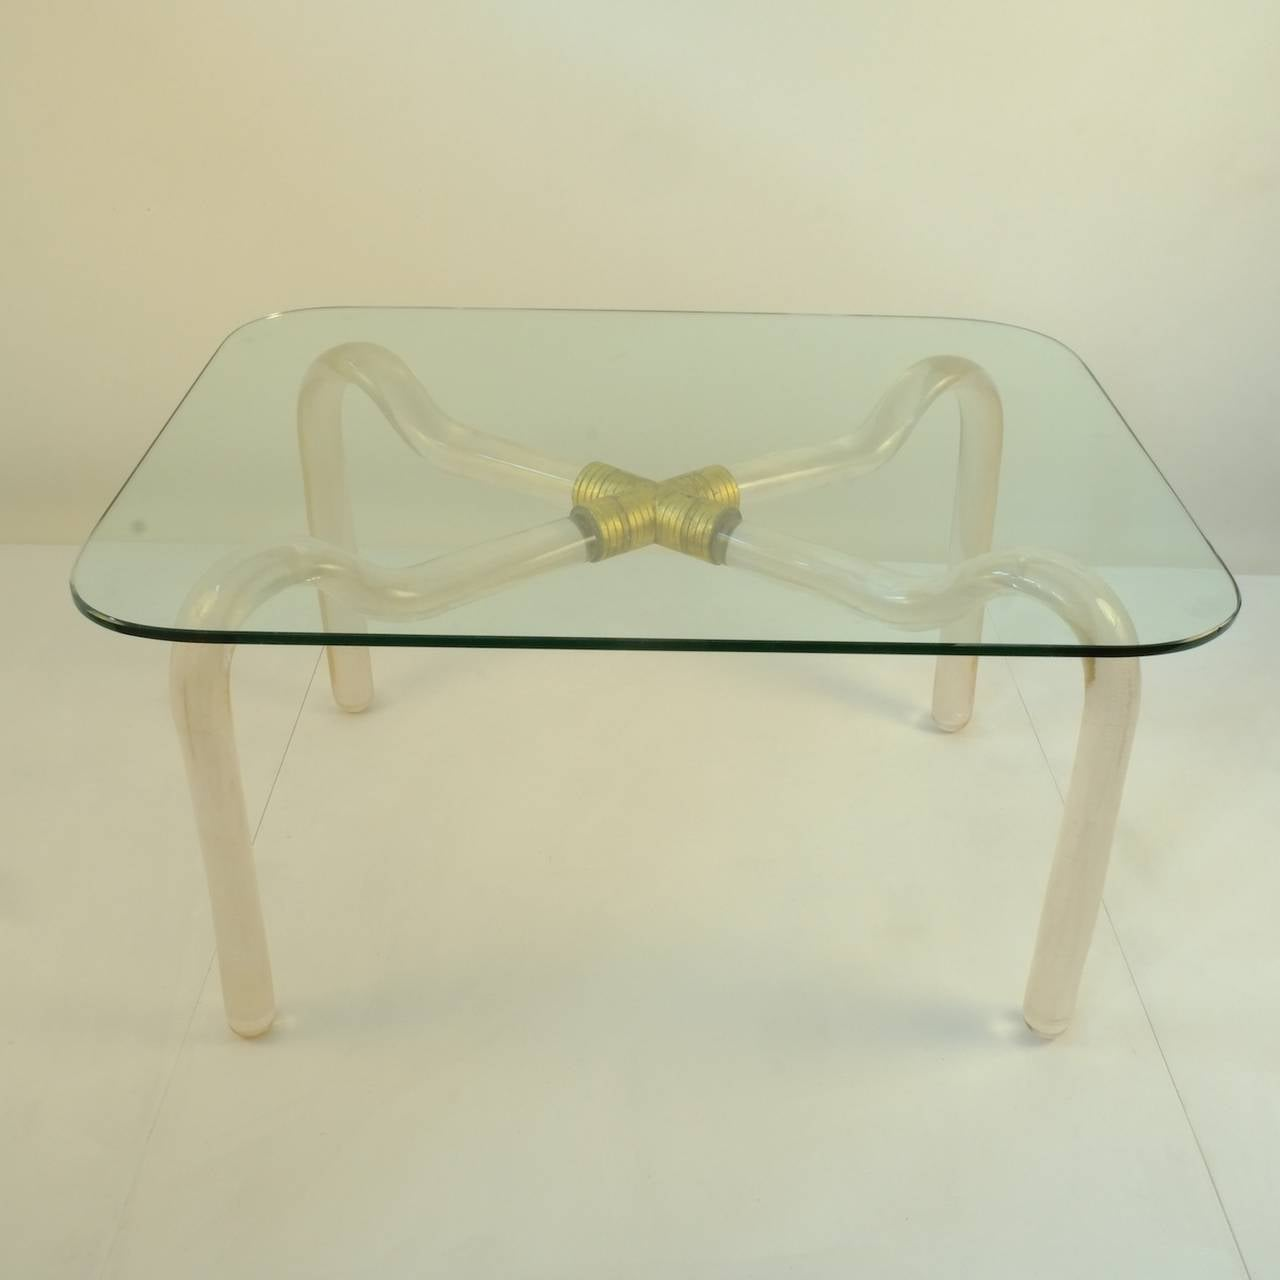 Coffee Table by Seguso Vetri d'Arte, the legs glass mottled with gold leafs.